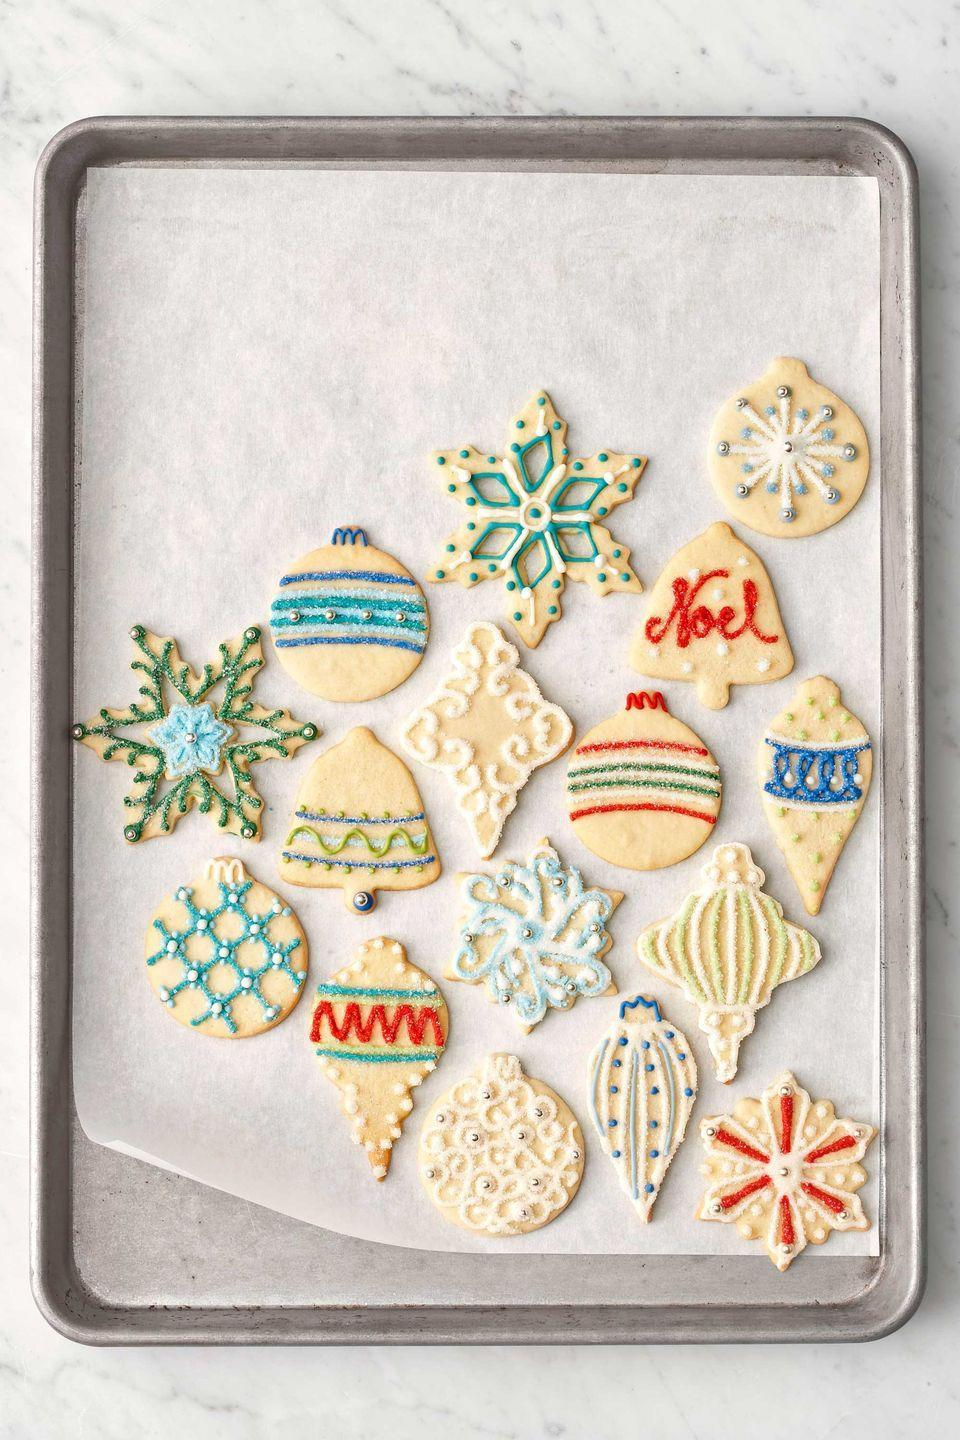 "<p>Simple sugar cookies go glamorous, thanks to ornament-shaped cutters and colorful icing.</p><p><a href=""https://www.countryliving.com/food-drinks/recipes/a3270/sugar-cookies-recipe/"" rel=""nofollow noopener"" target=""_blank"" data-ylk=""slk:Get the recipe."" class=""link rapid-noclick-resp""><strong>Get the recipe.</strong></a></p>"